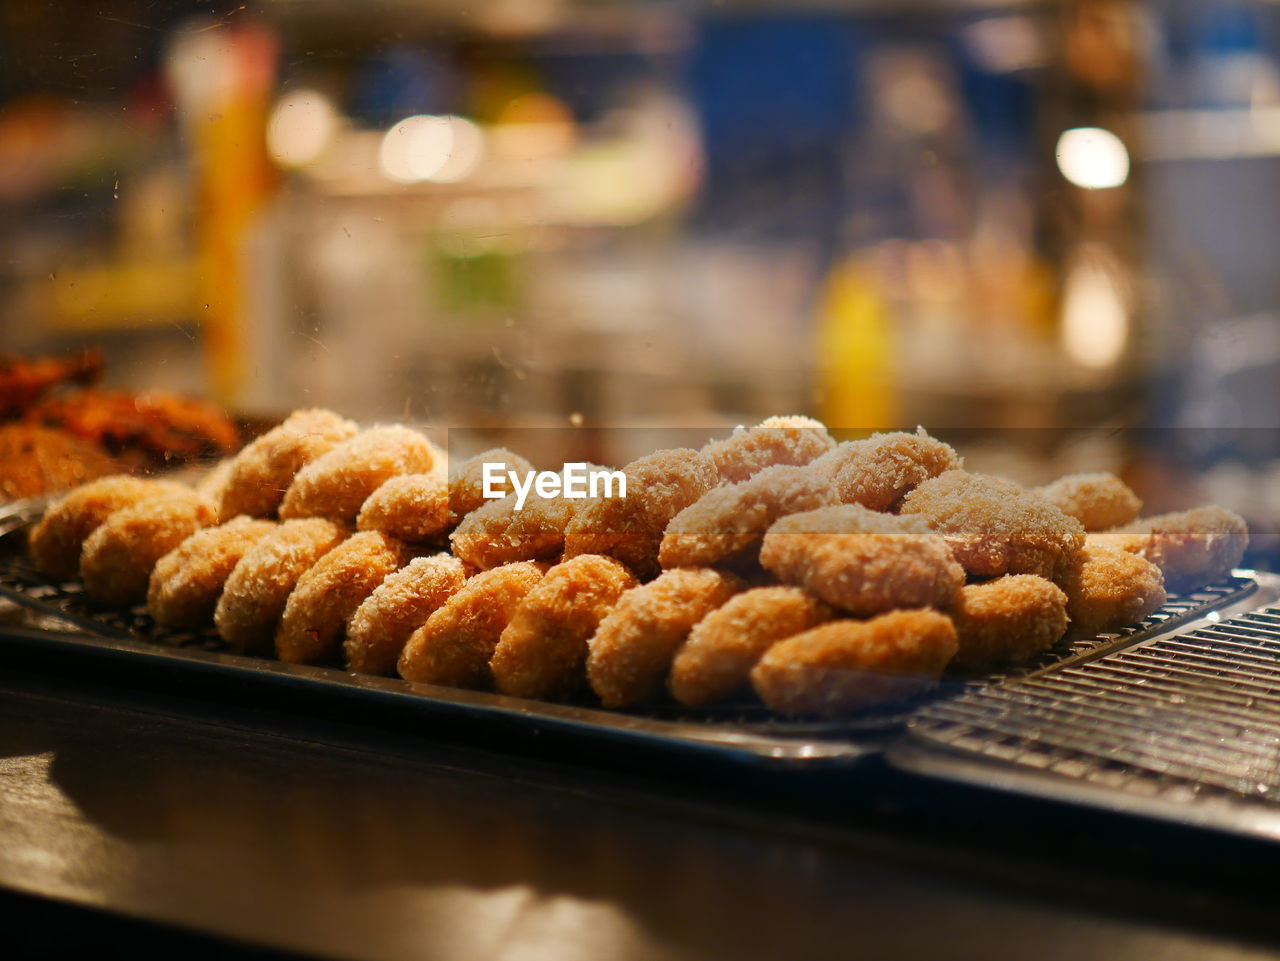 food, food and drink, freshness, selective focus, ready-to-eat, indoors, still life, close-up, no people, sweet food, table, focus on foreground, indulgence, unhealthy eating, temptation, deep fried, business, large group of objects, baked, for sale, snack, tray